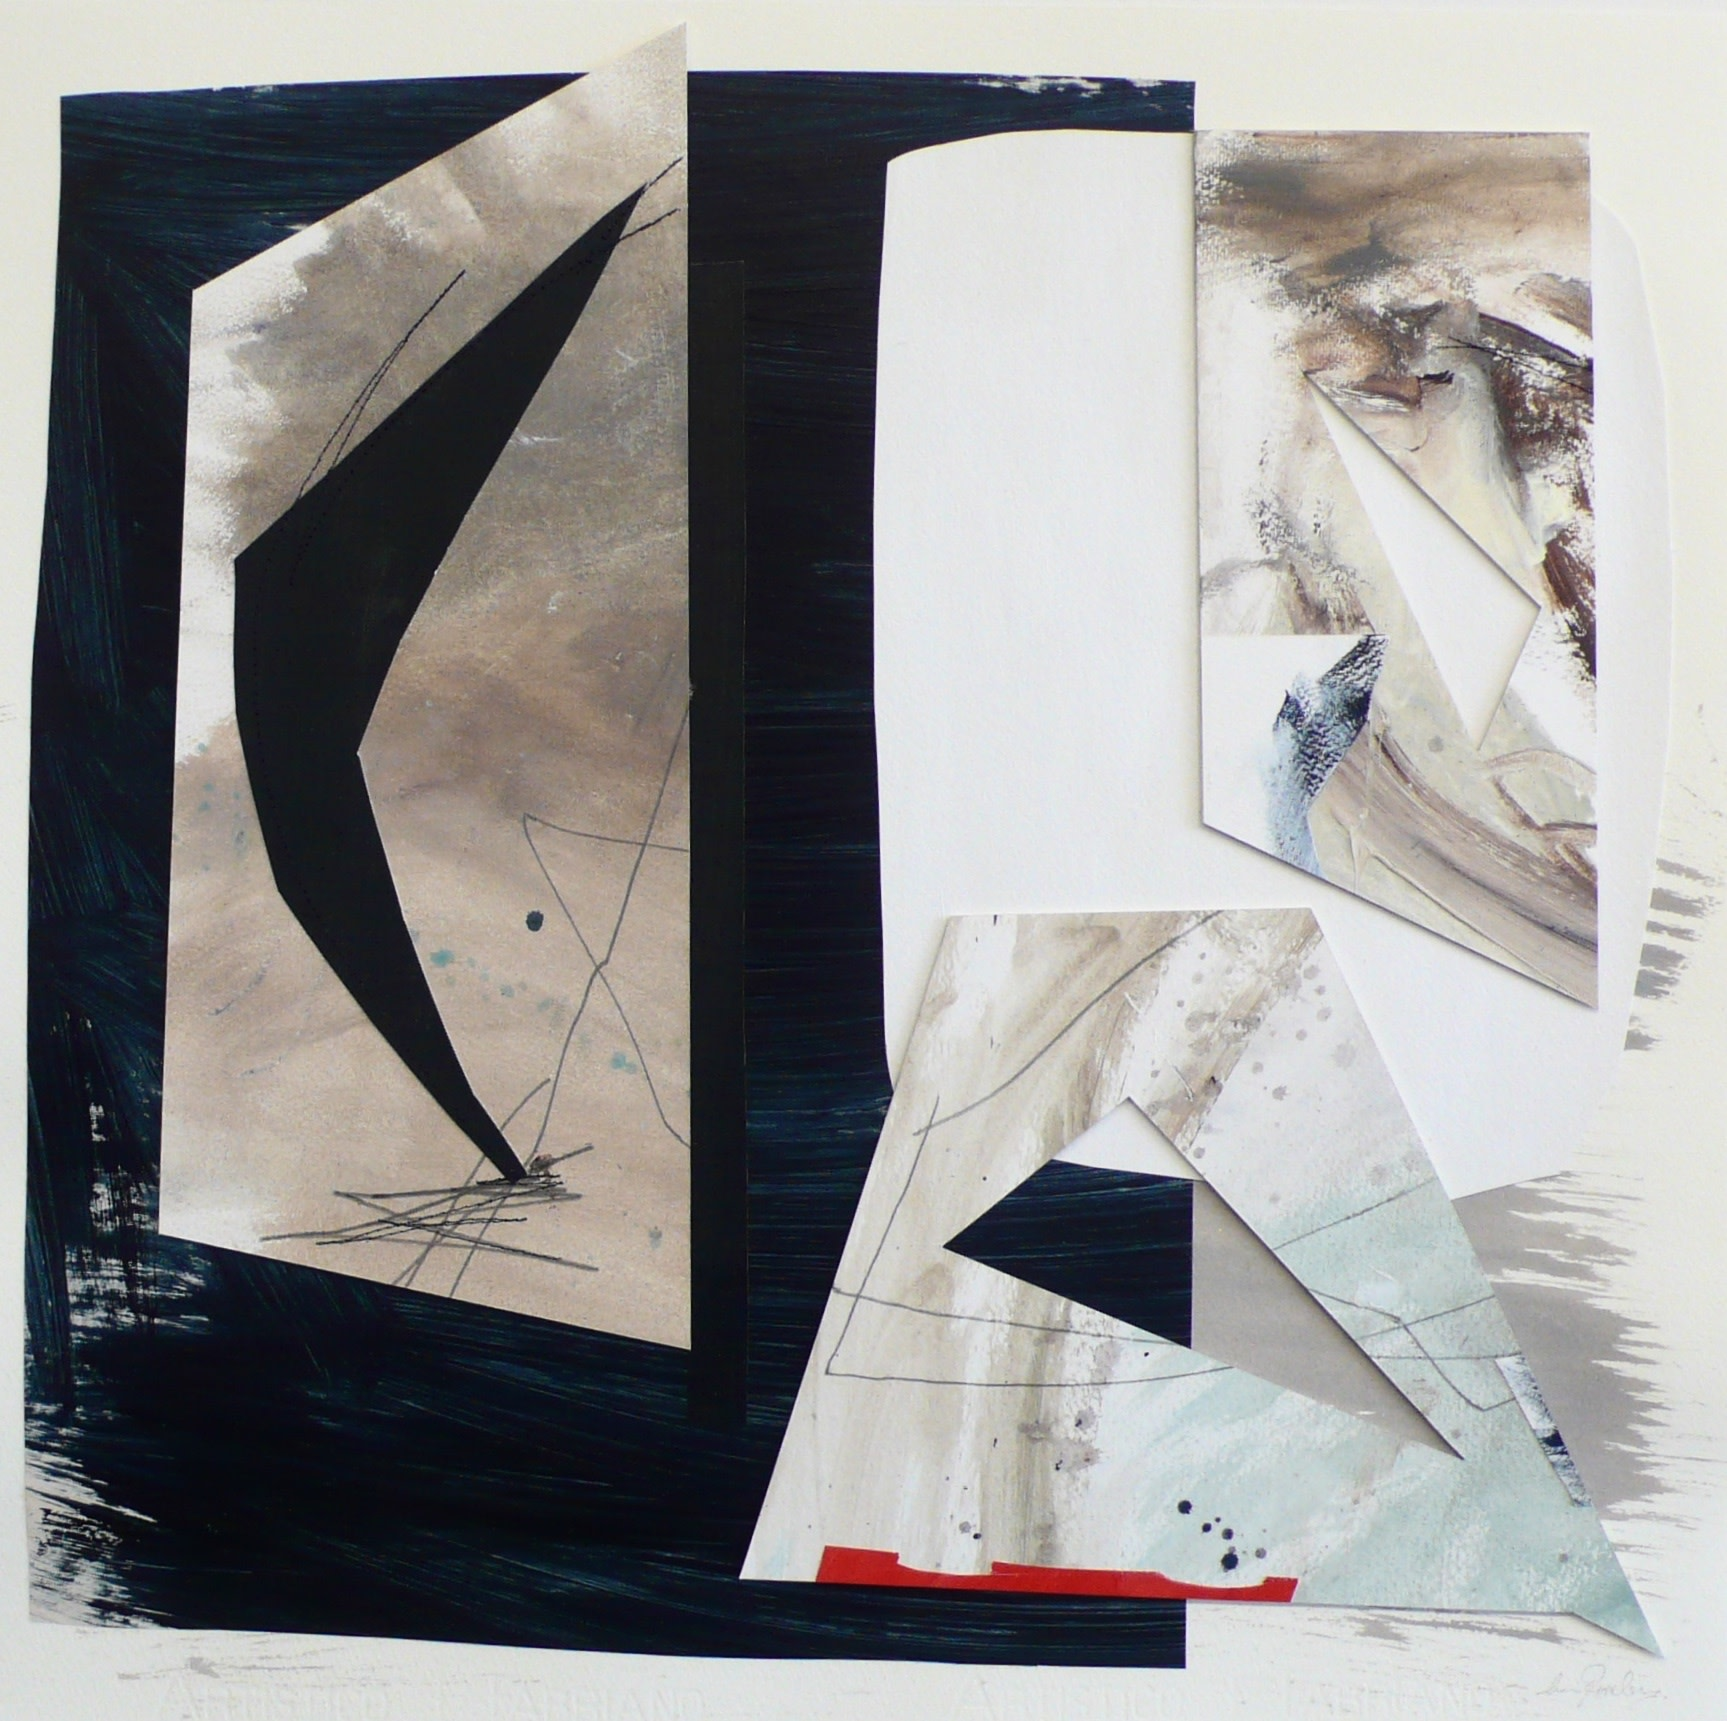 <span class=&#34;link fancybox-details-link&#34;><a href=&#34;/exhibitions/24/works/artworks_standalone10807/&#34;>View Detail Page</a></span><div class=&#34;artist&#34;><span class=&#34;artist&#34;><strong>Lisa Traxler</strong></span></div><div class=&#34;title&#34;><em>The Edge Between Night and Day</em></div><div class=&#34;medium&#34;>acrylic, thread & collage</div><div class=&#34;dimensions&#34;>72x72cm</div>